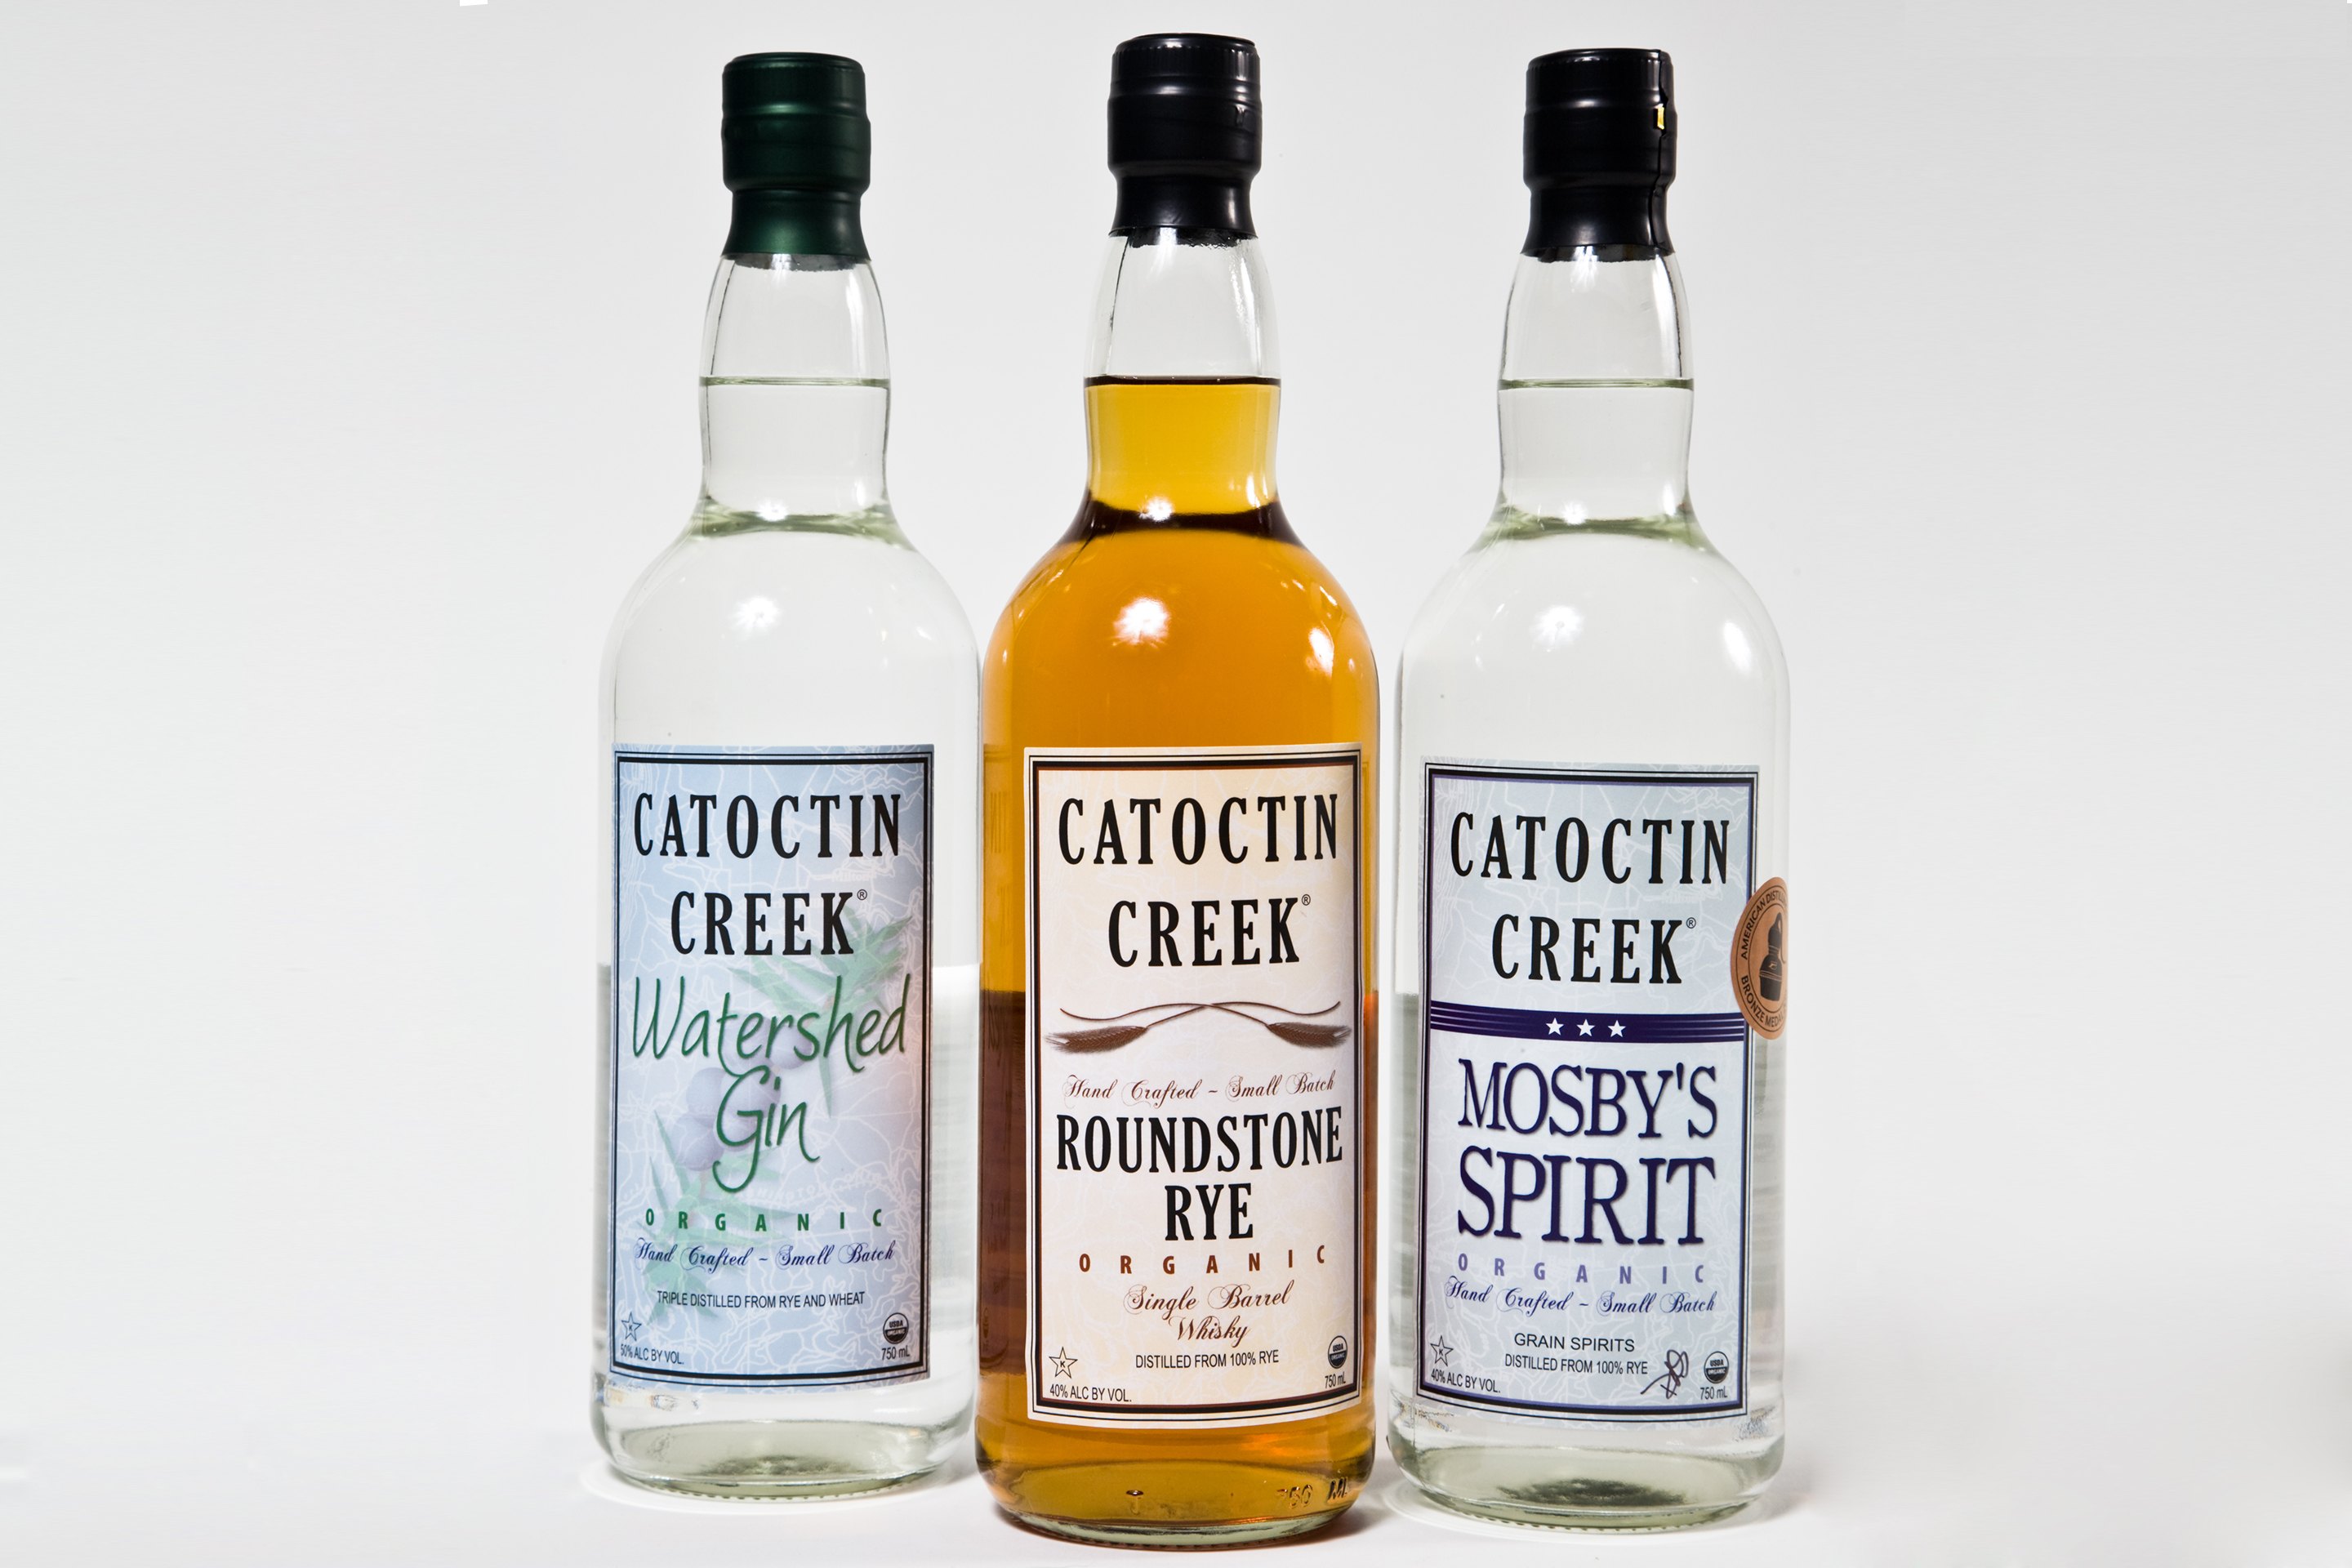 Bottles of Watershed Gin, Roundstone Rye Whisky and Mosby's Spirit at Catoctin Creek Distillery in Purcellville Virginia.